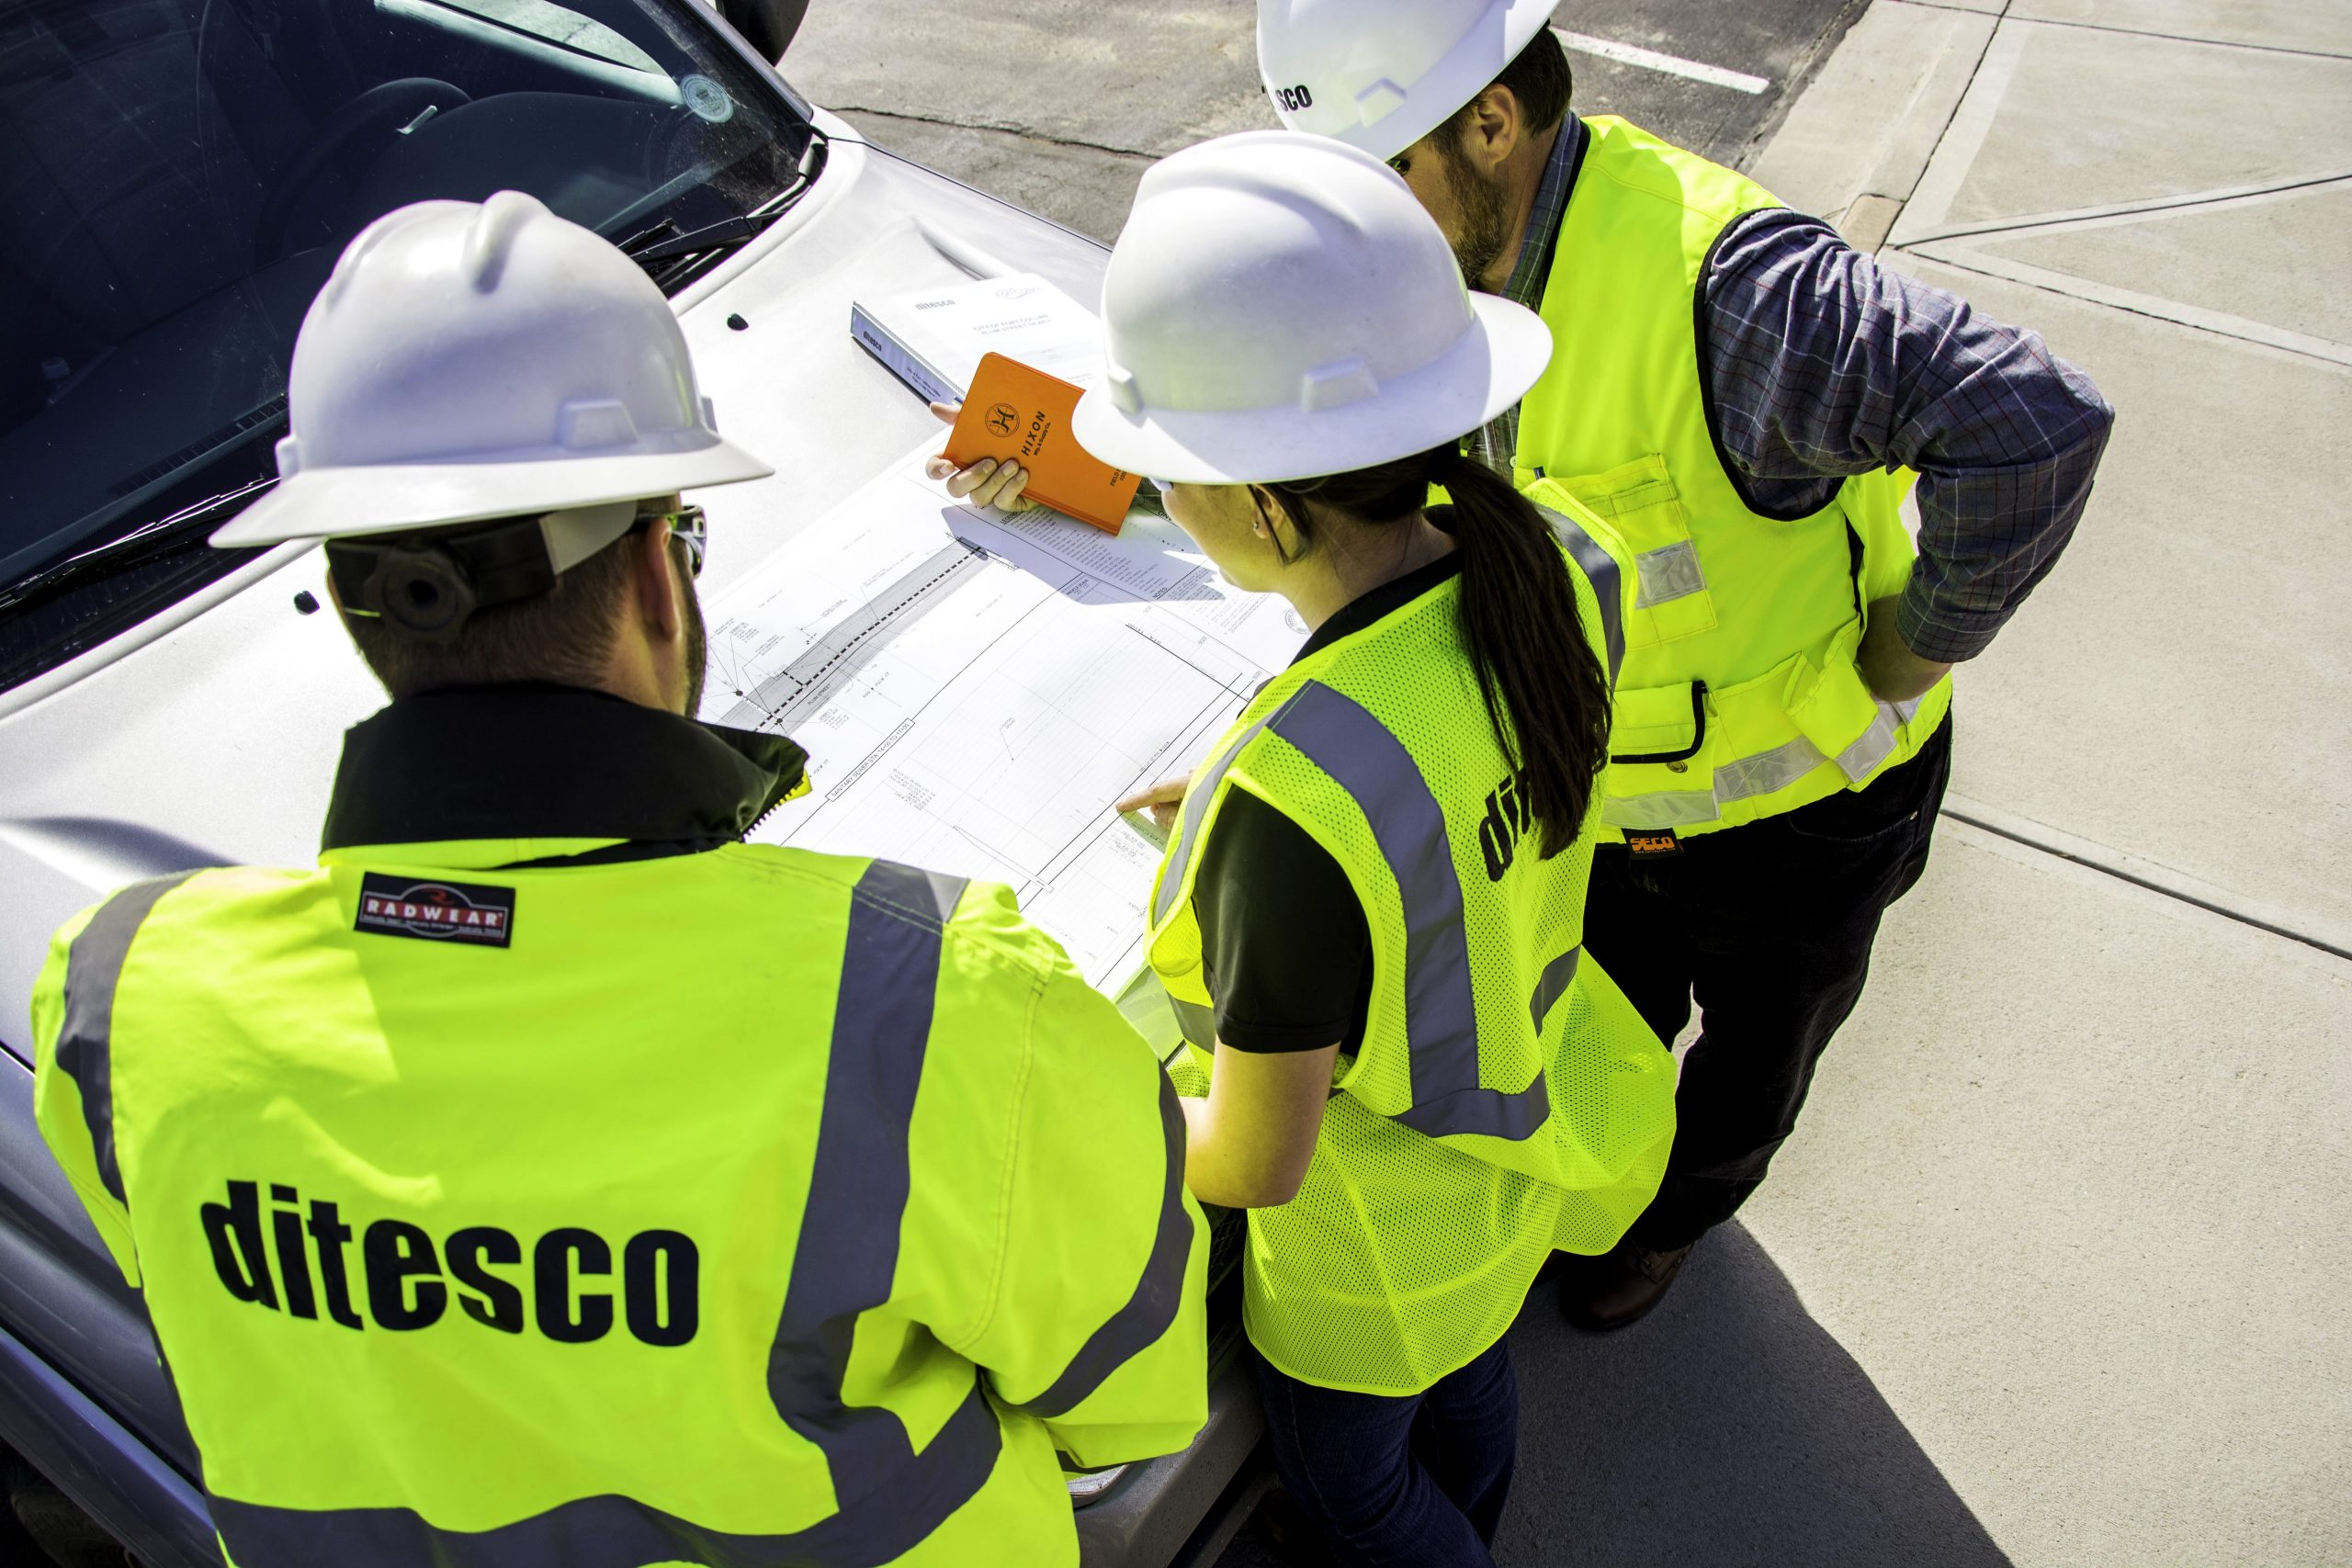 Image of ditesco construction workers inspecting blue prints